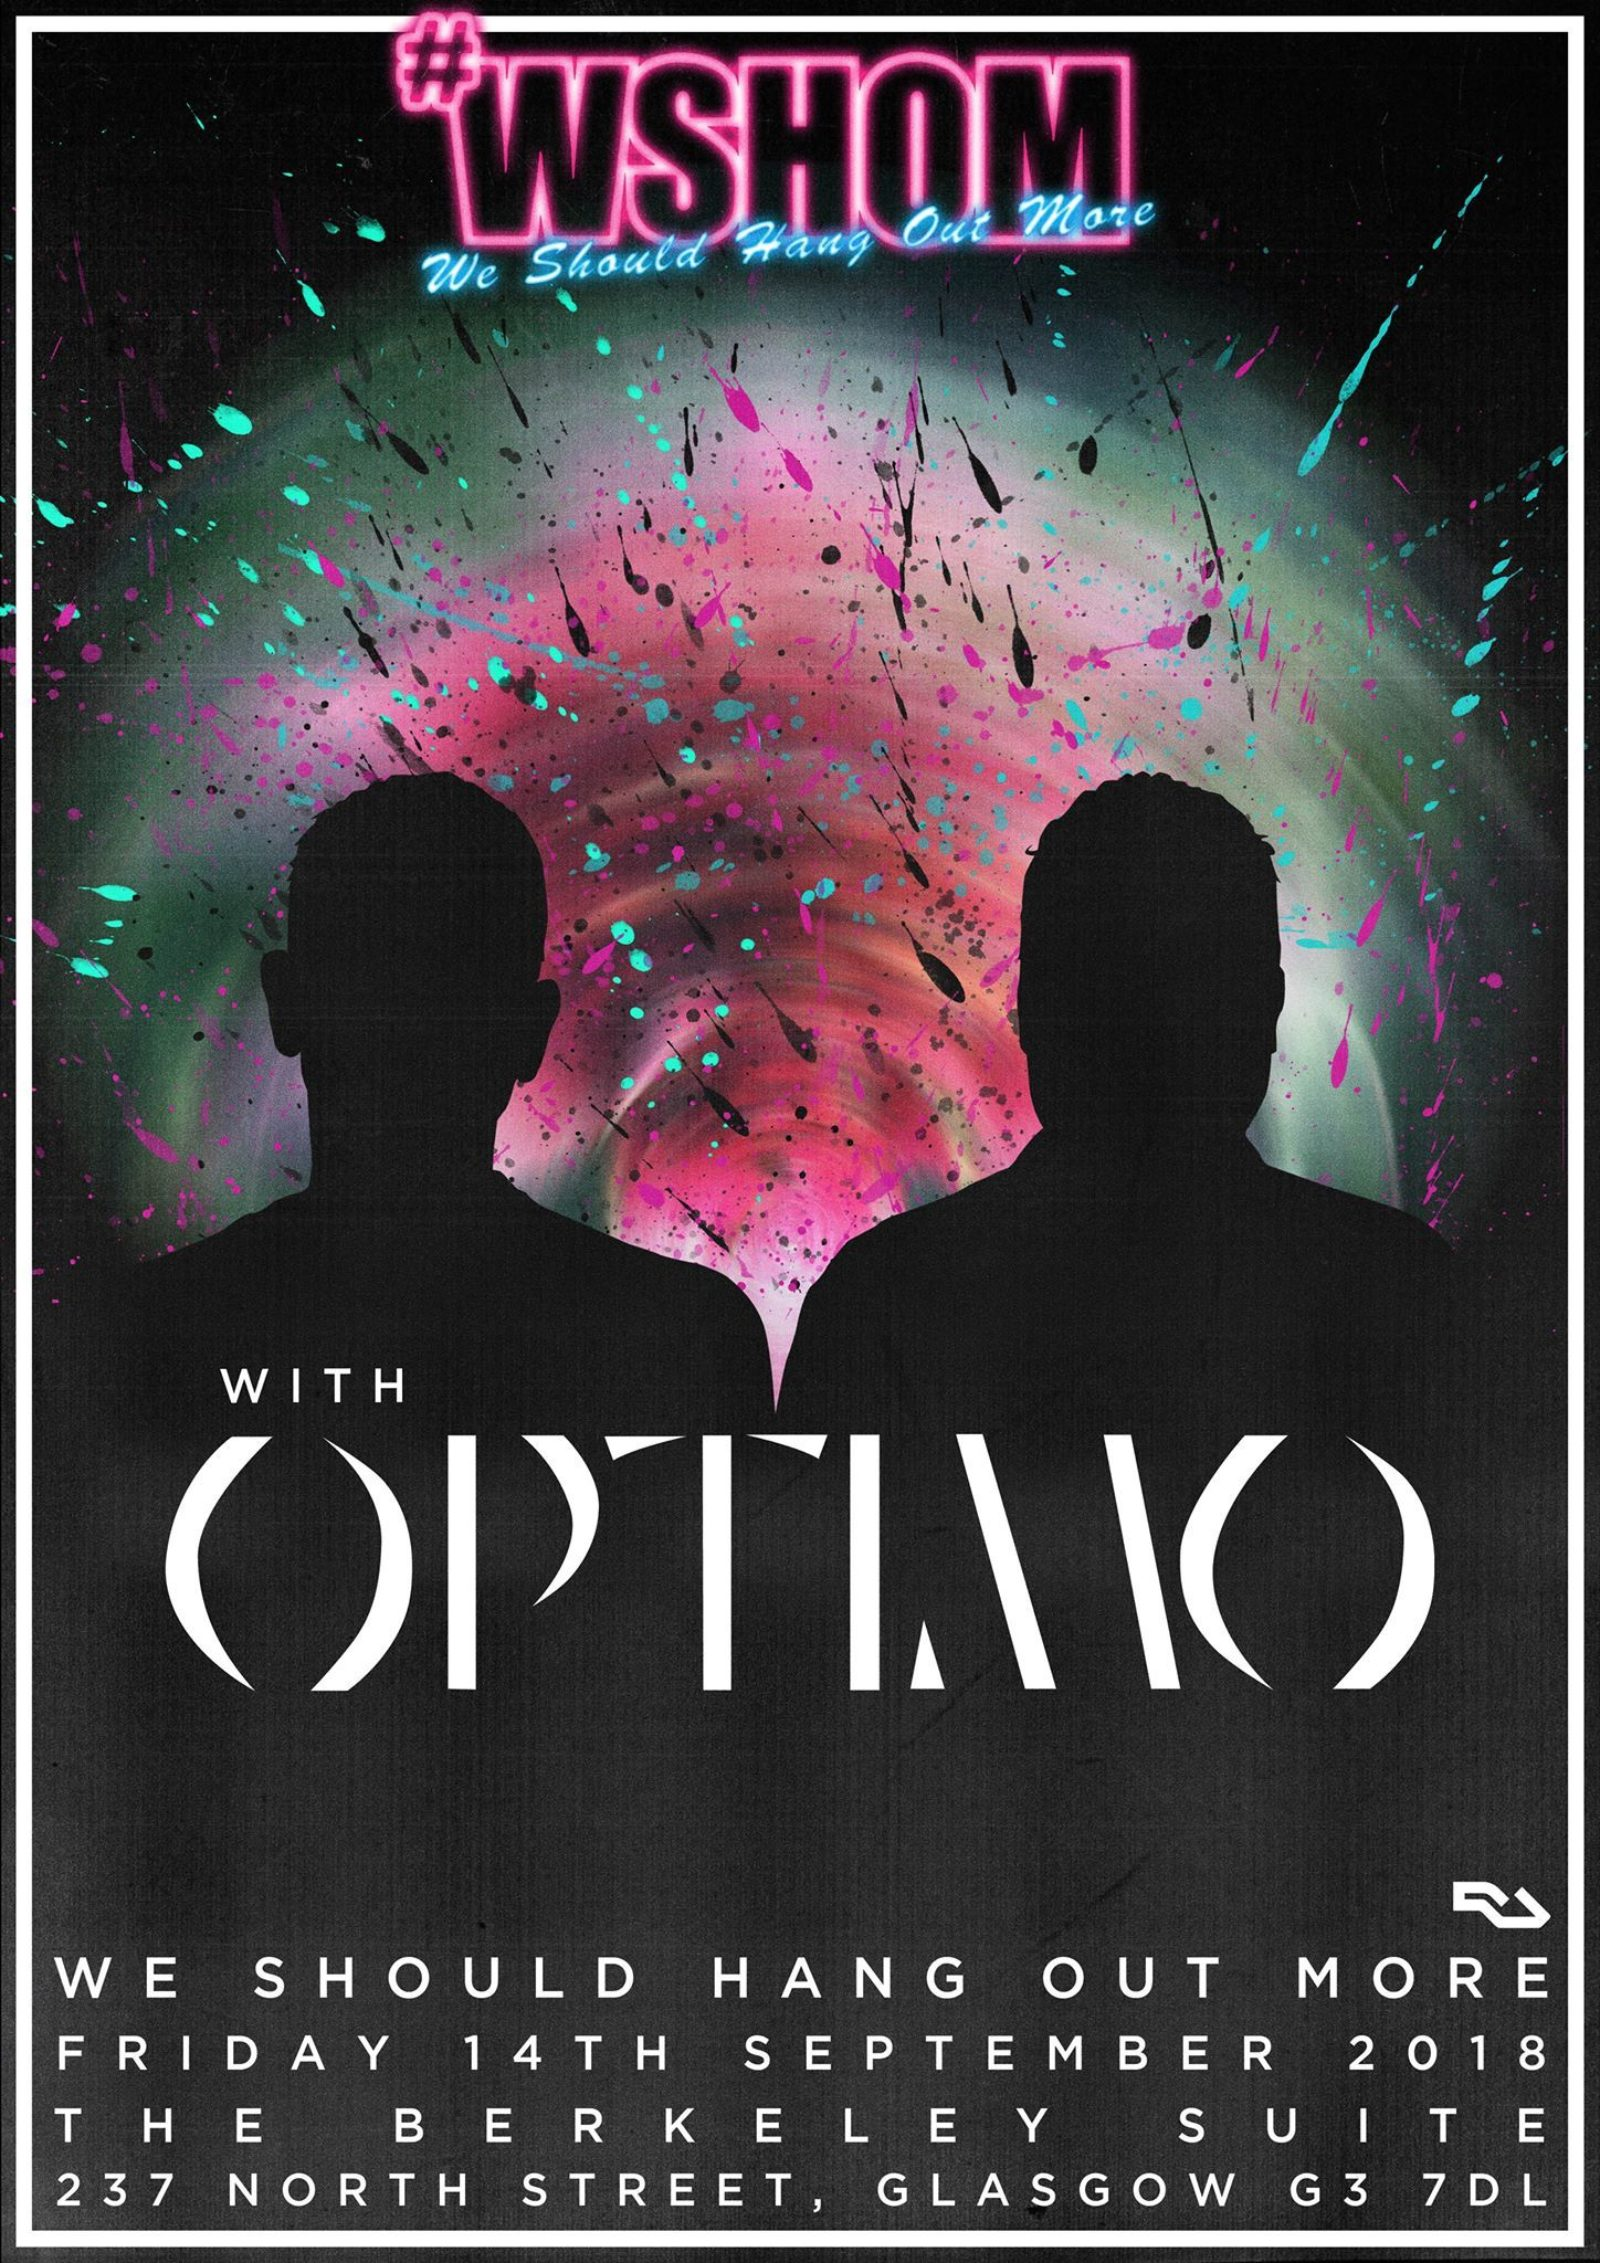 WSHOM with OPTIMO!